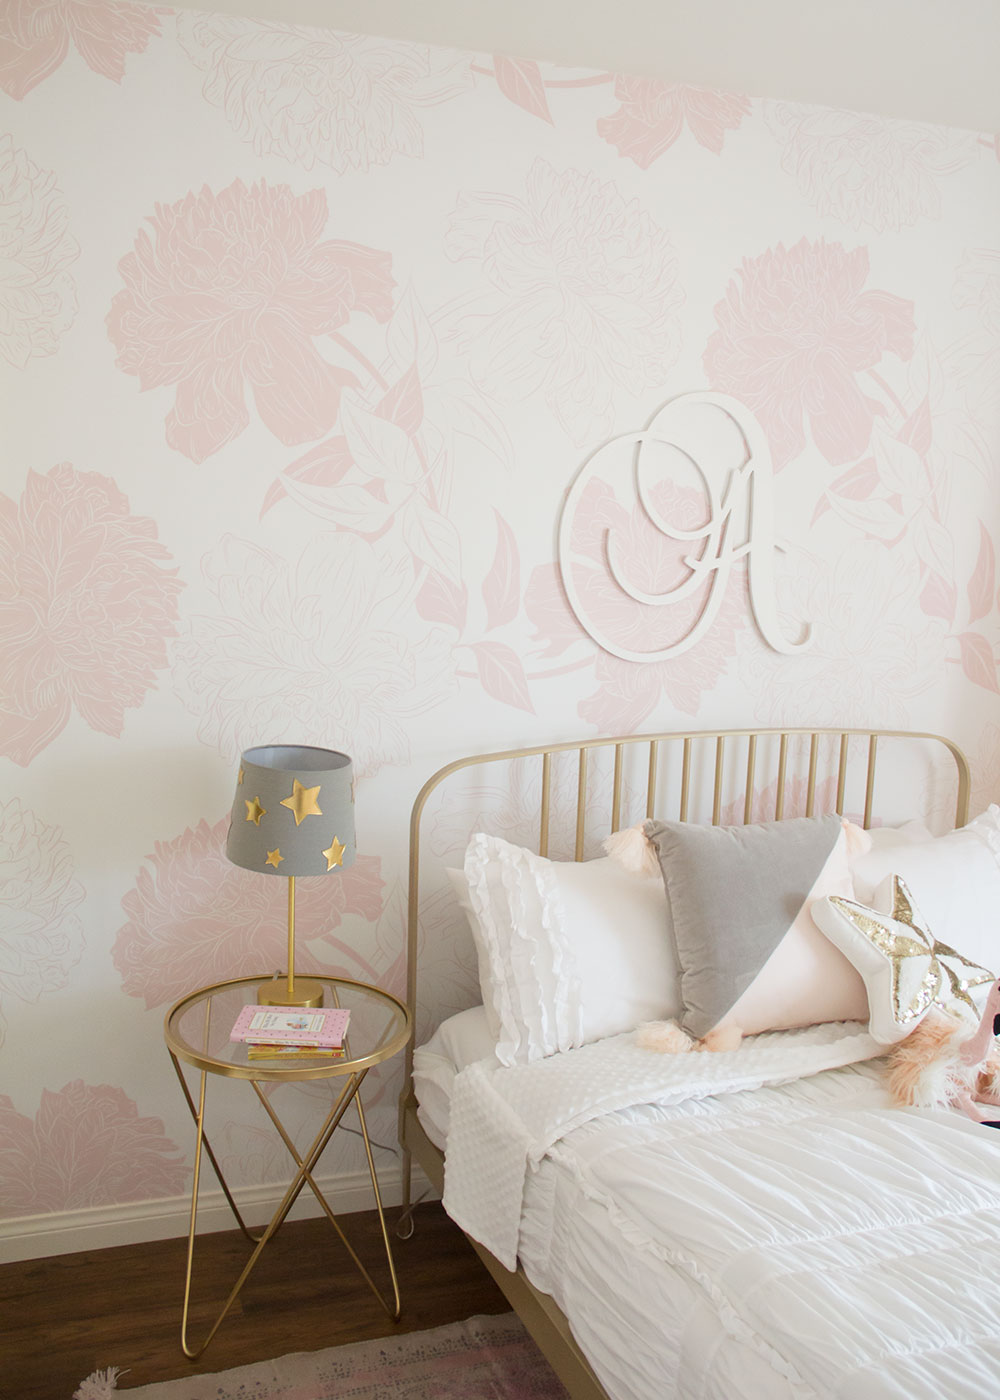 love is in the details of this pretty pink girly big girl room reveal | thelovedesignedlife.com